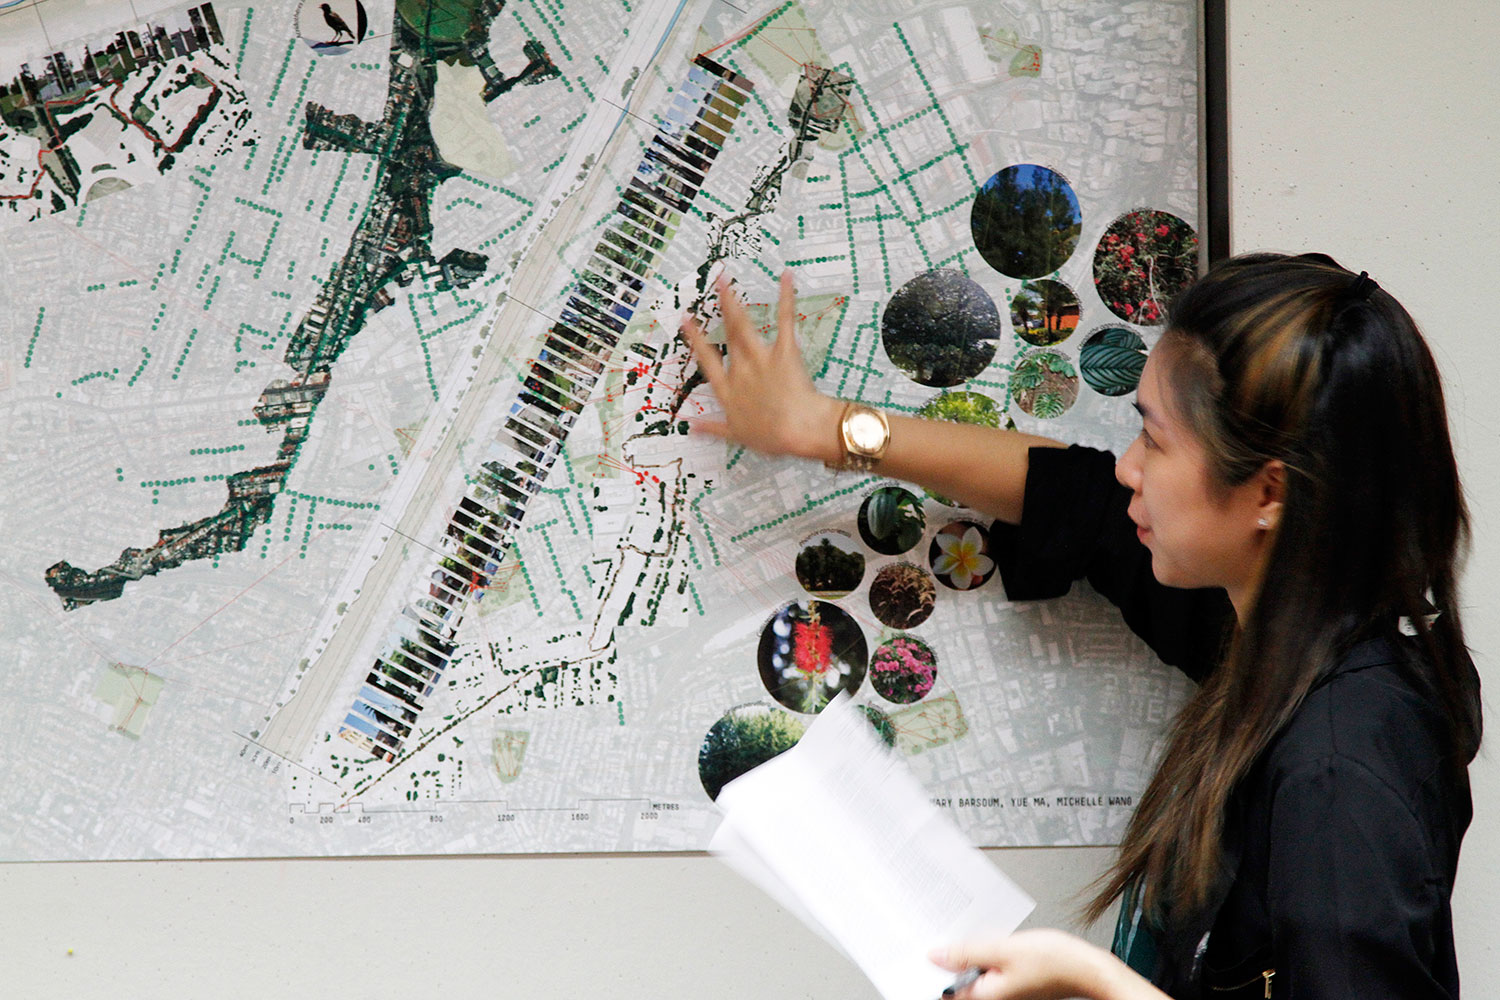 lady in front of landscape plans